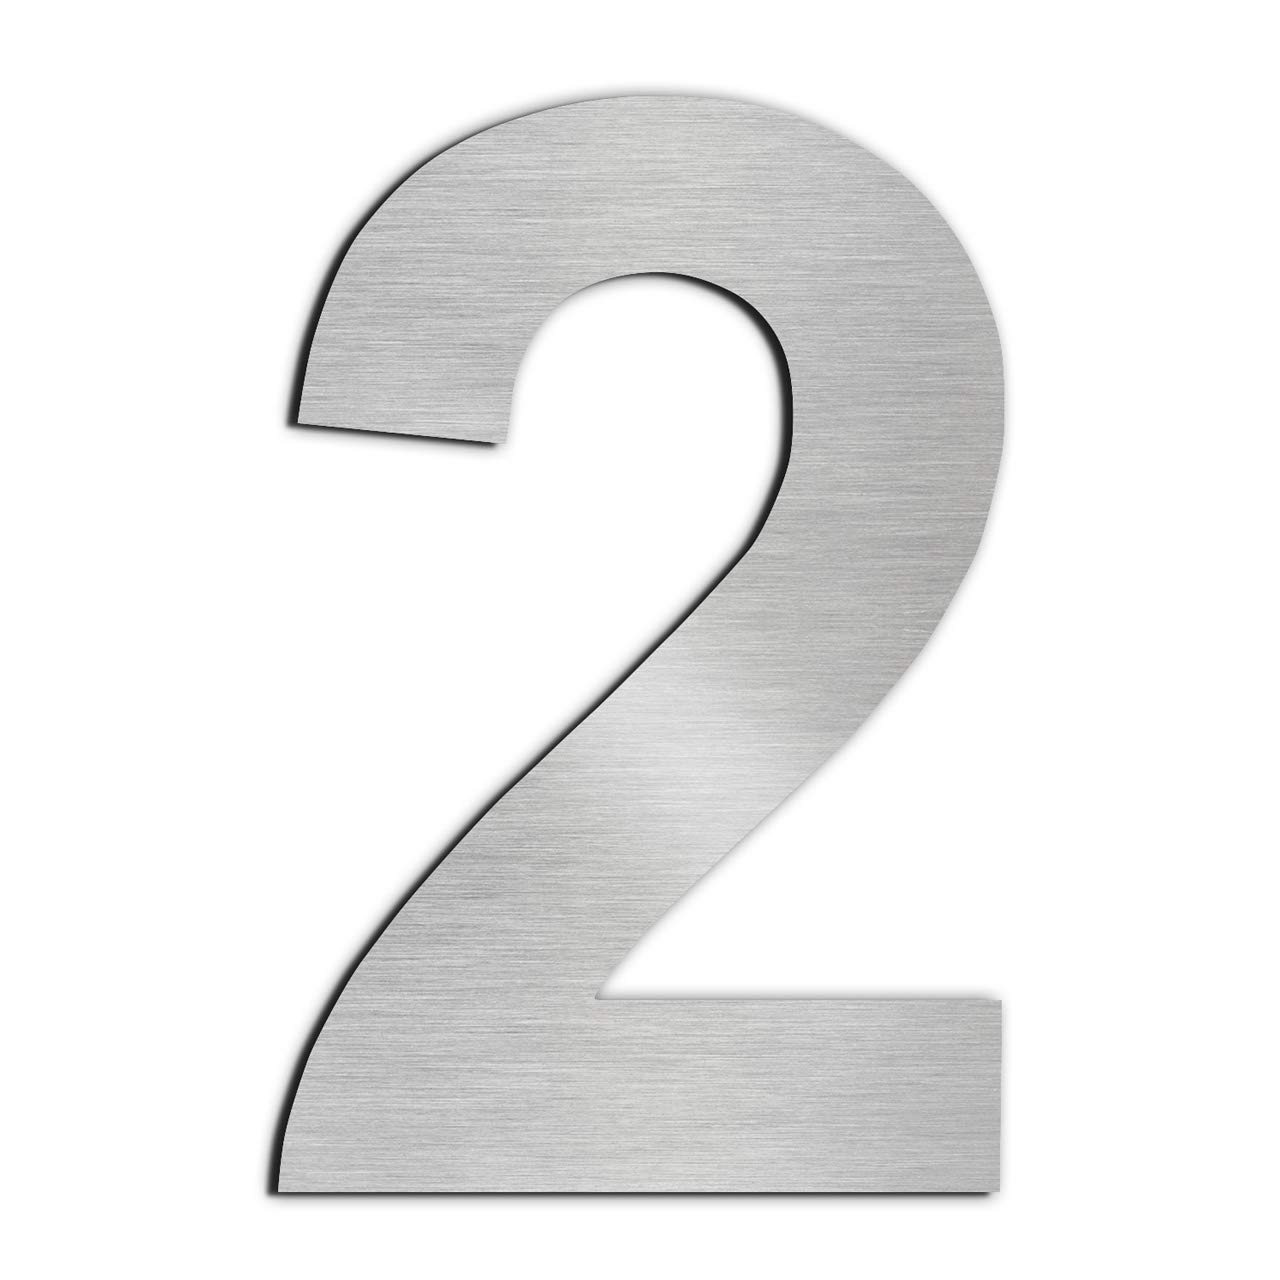 GFDesign Modern House Number 2 Floating Home Address Numerals Sign Plaque Heavy Duty Mount for Home Hotel Office Brushed Nickel Solid 304 Stainless Steel - 6 inches